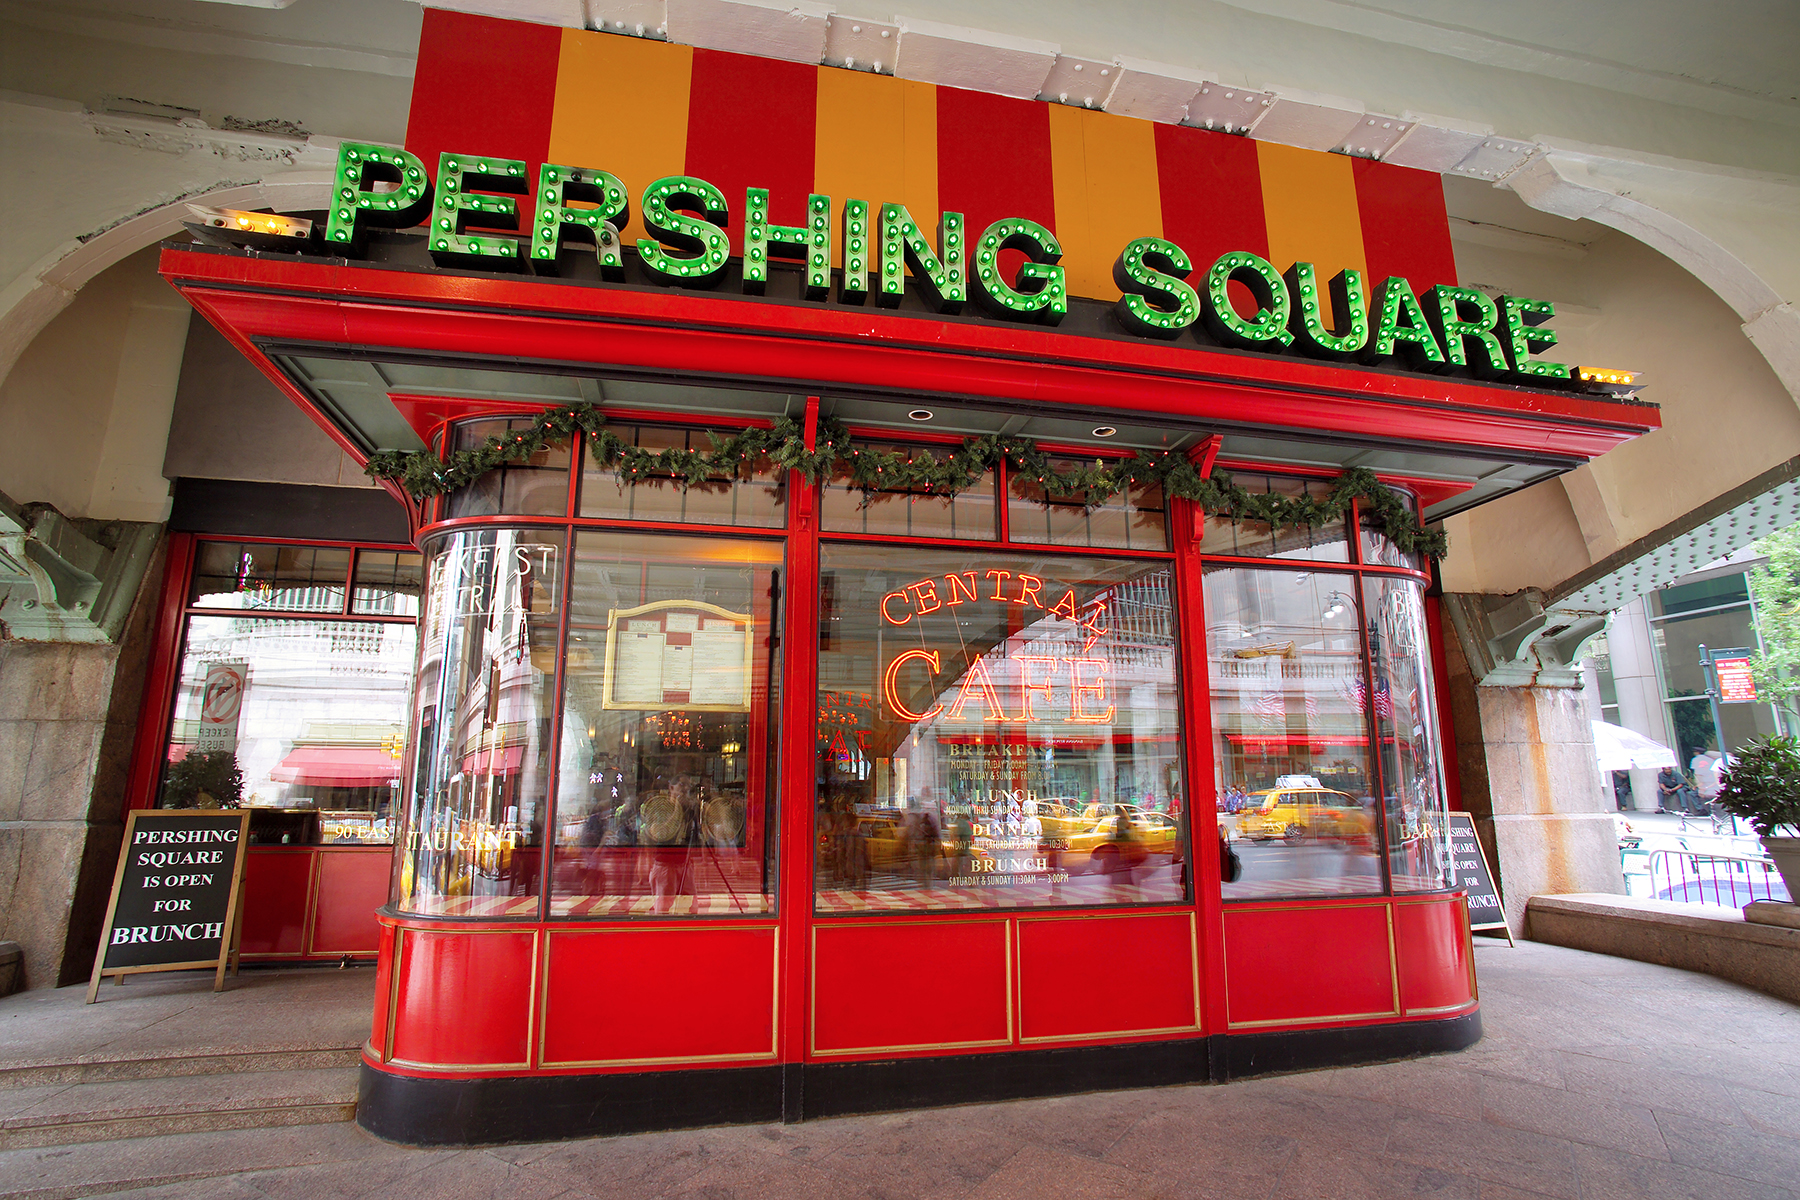 Pershing Square Central Cafe